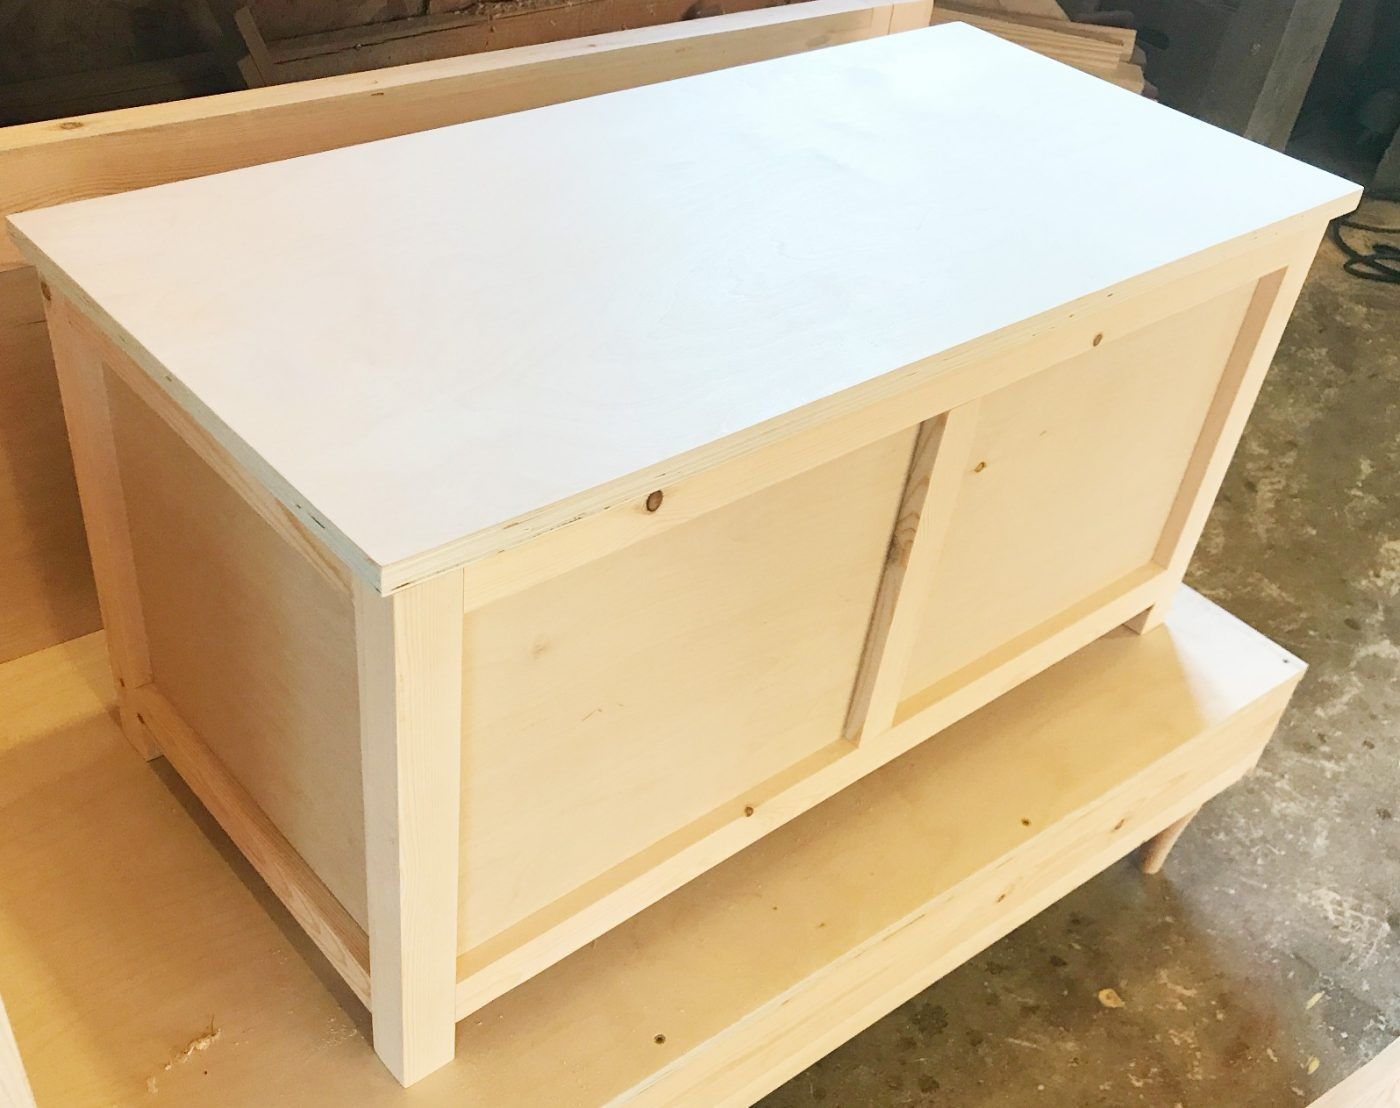 How to Build a Simple DIY Storage Chest Diy storage